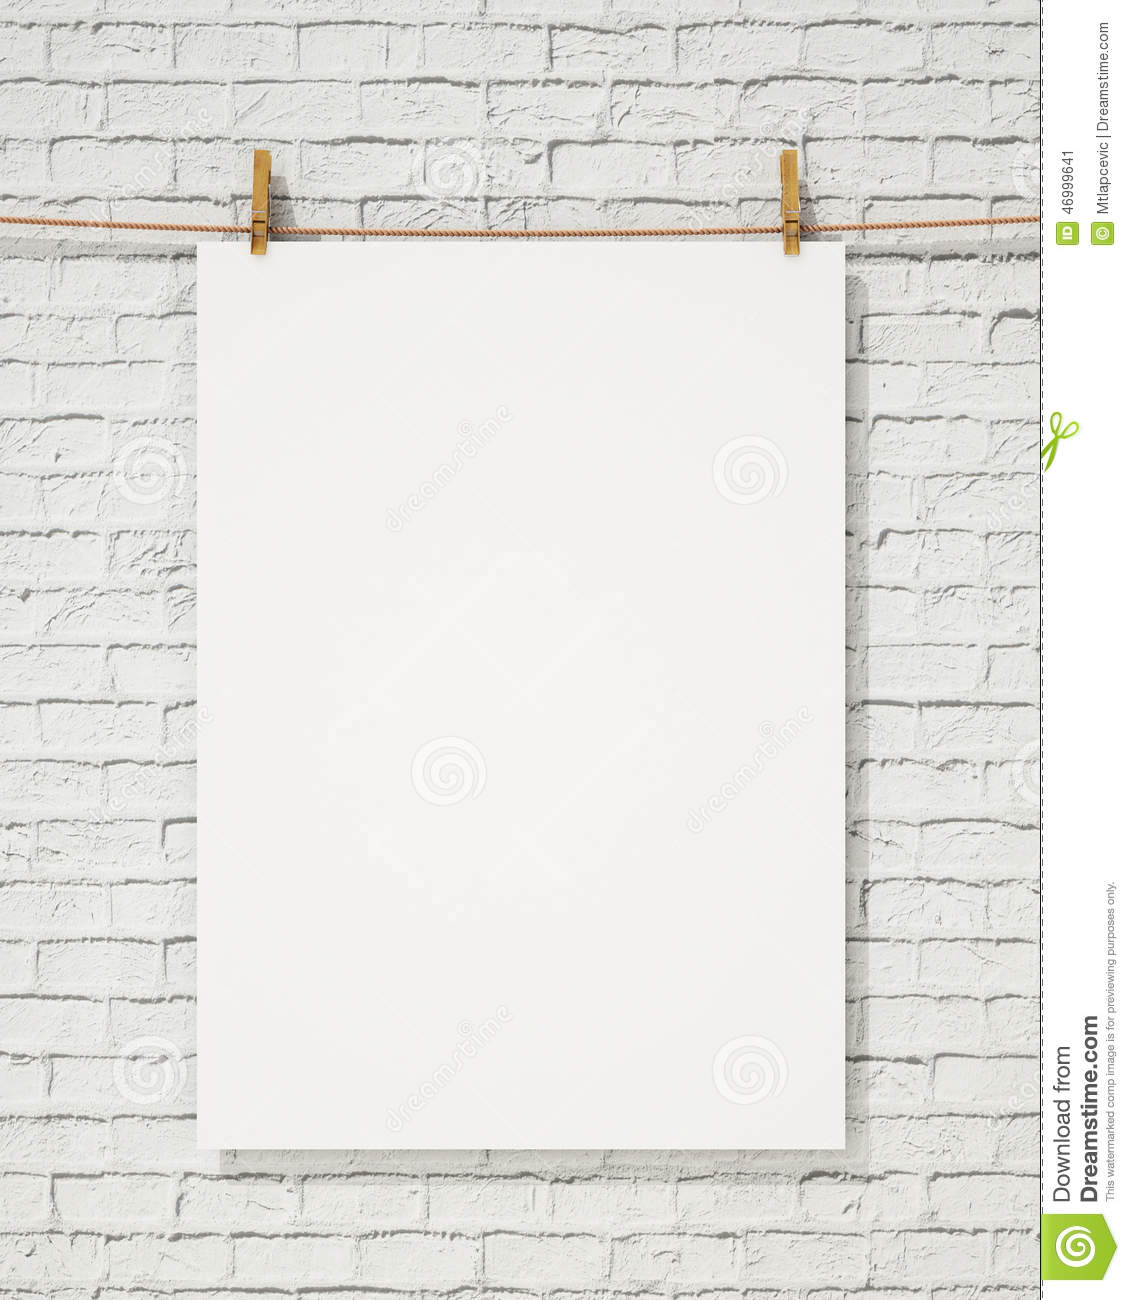 Blank White Hanging Poster With Clothespin And Rope On